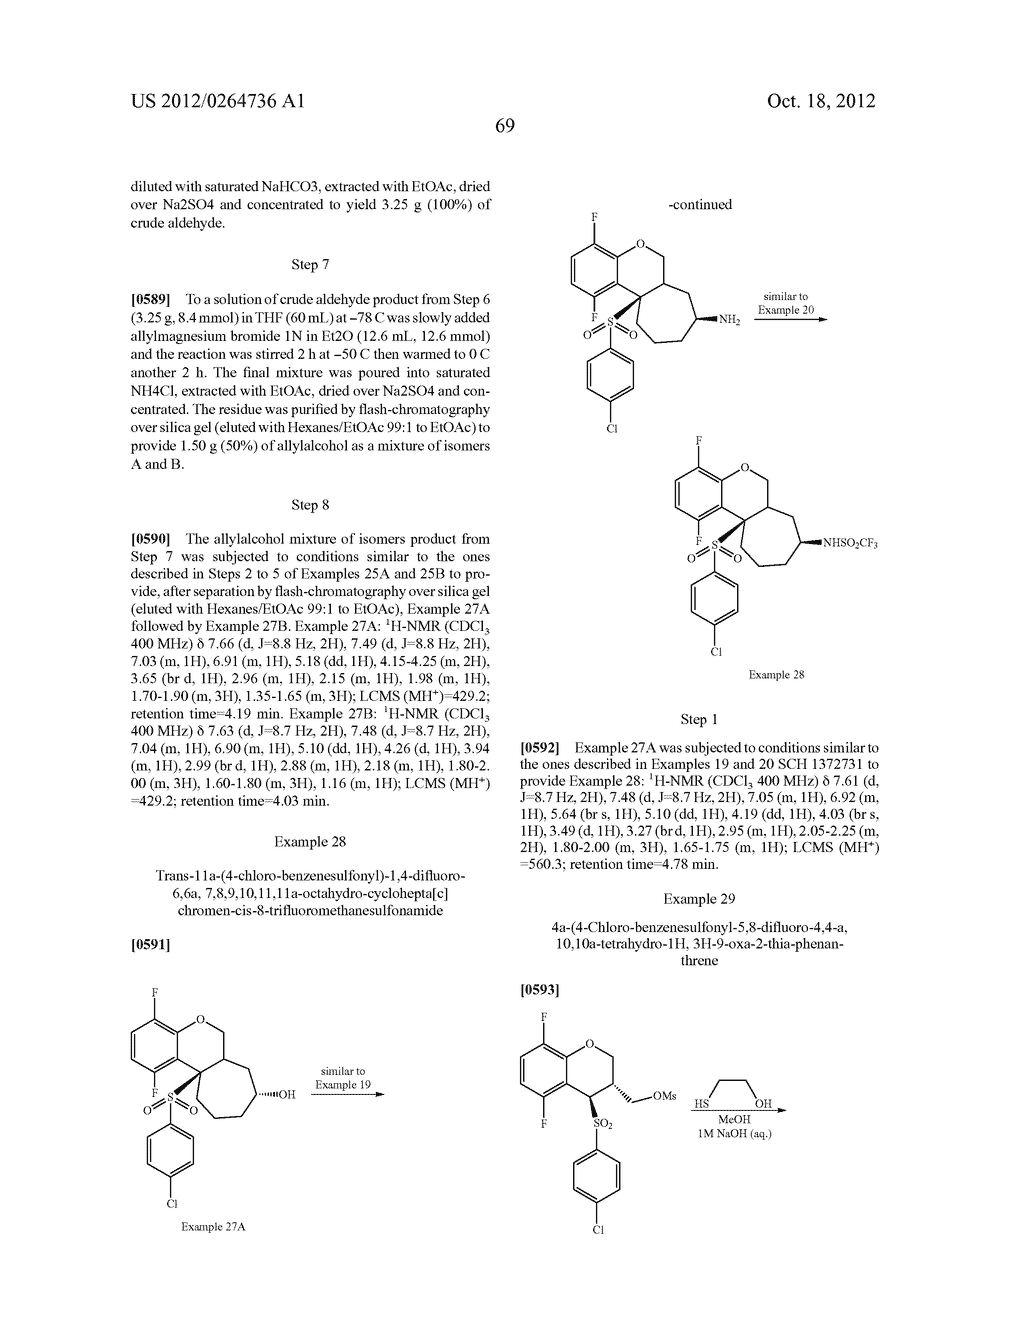 BENZENESULFONYL-CHROMANE, THIOCHROMANE, TETRAHYDRONAPHTHALENE AND RELATED     GAMMA SECRETASE INHIBITORS - diagram, schematic, and image 70